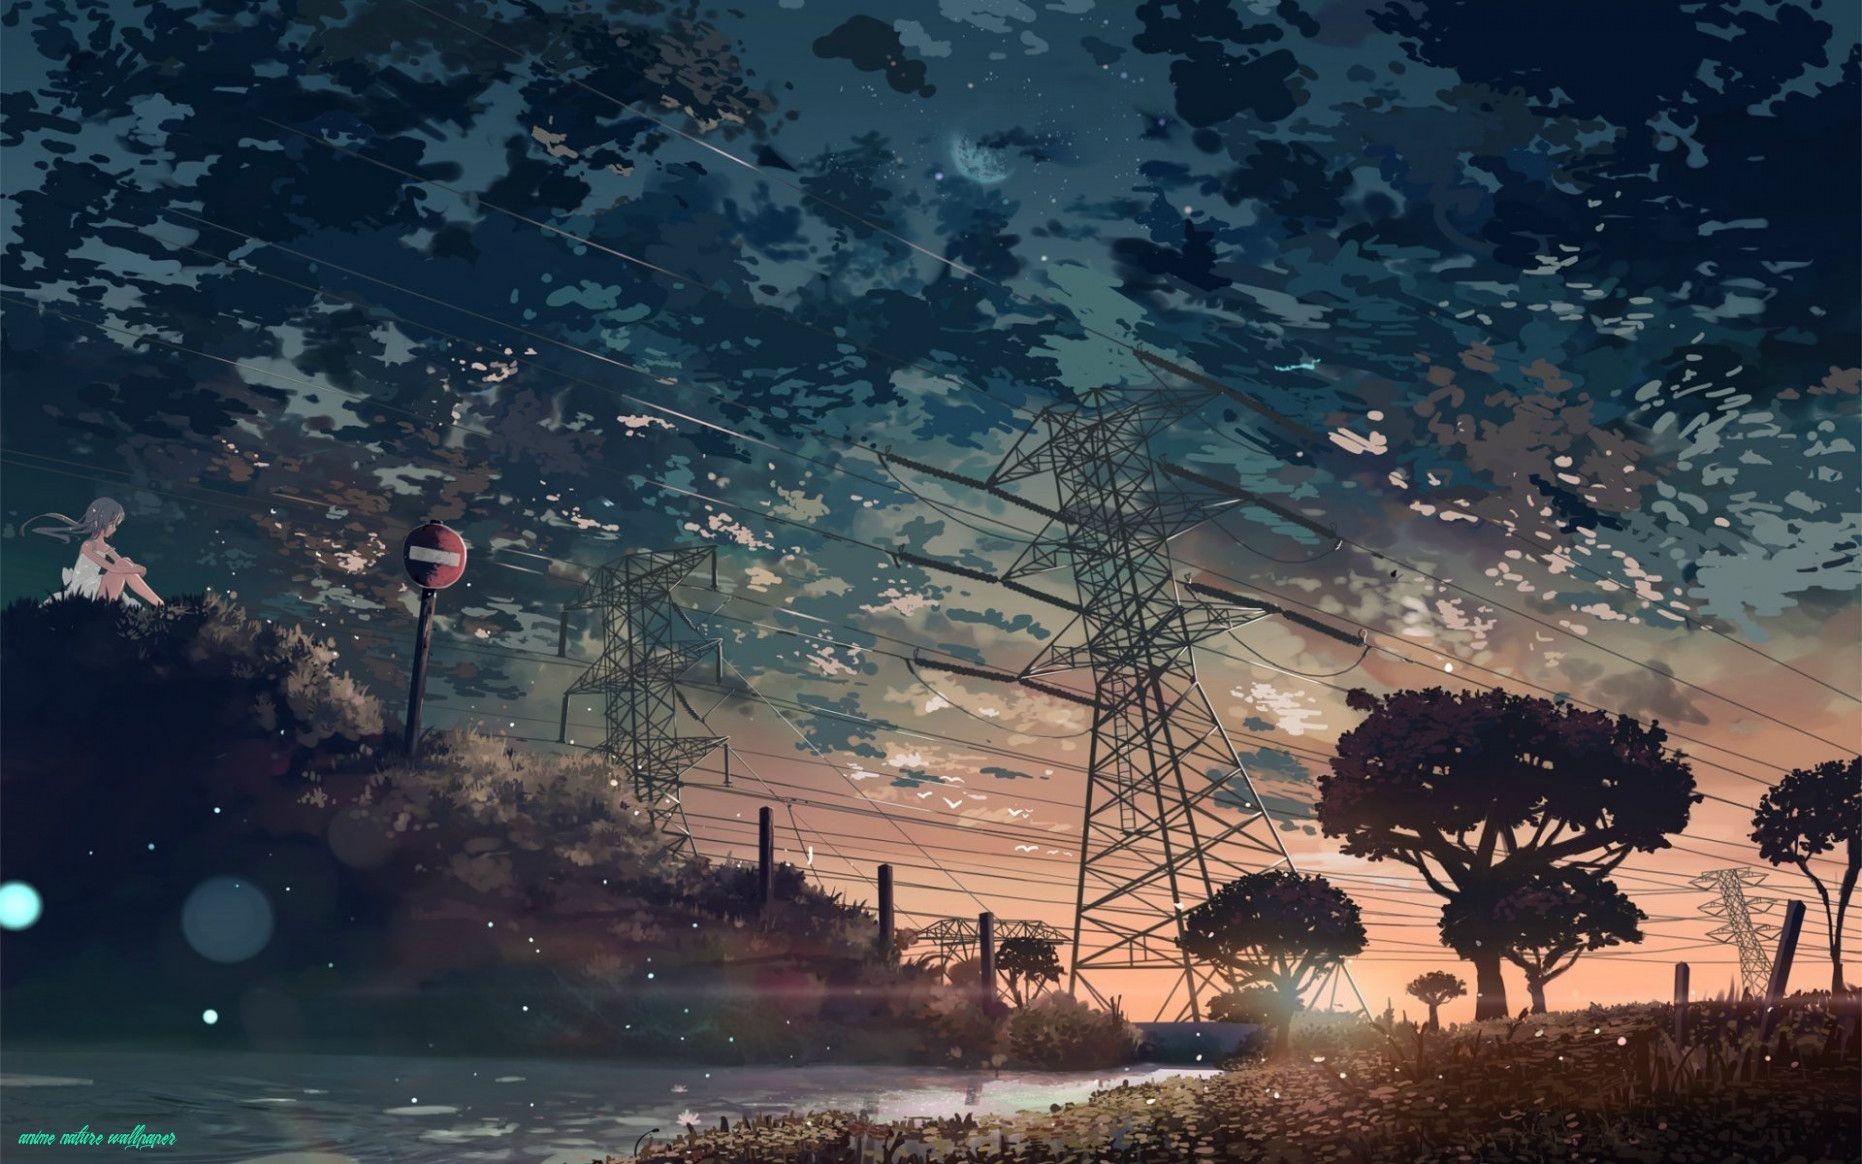 Ten Common Myths About Anime Nature Wallpaper Anime Nature Wallpaper Landscape Wallpaper Scenery Wallpaper Anime Wallpaper